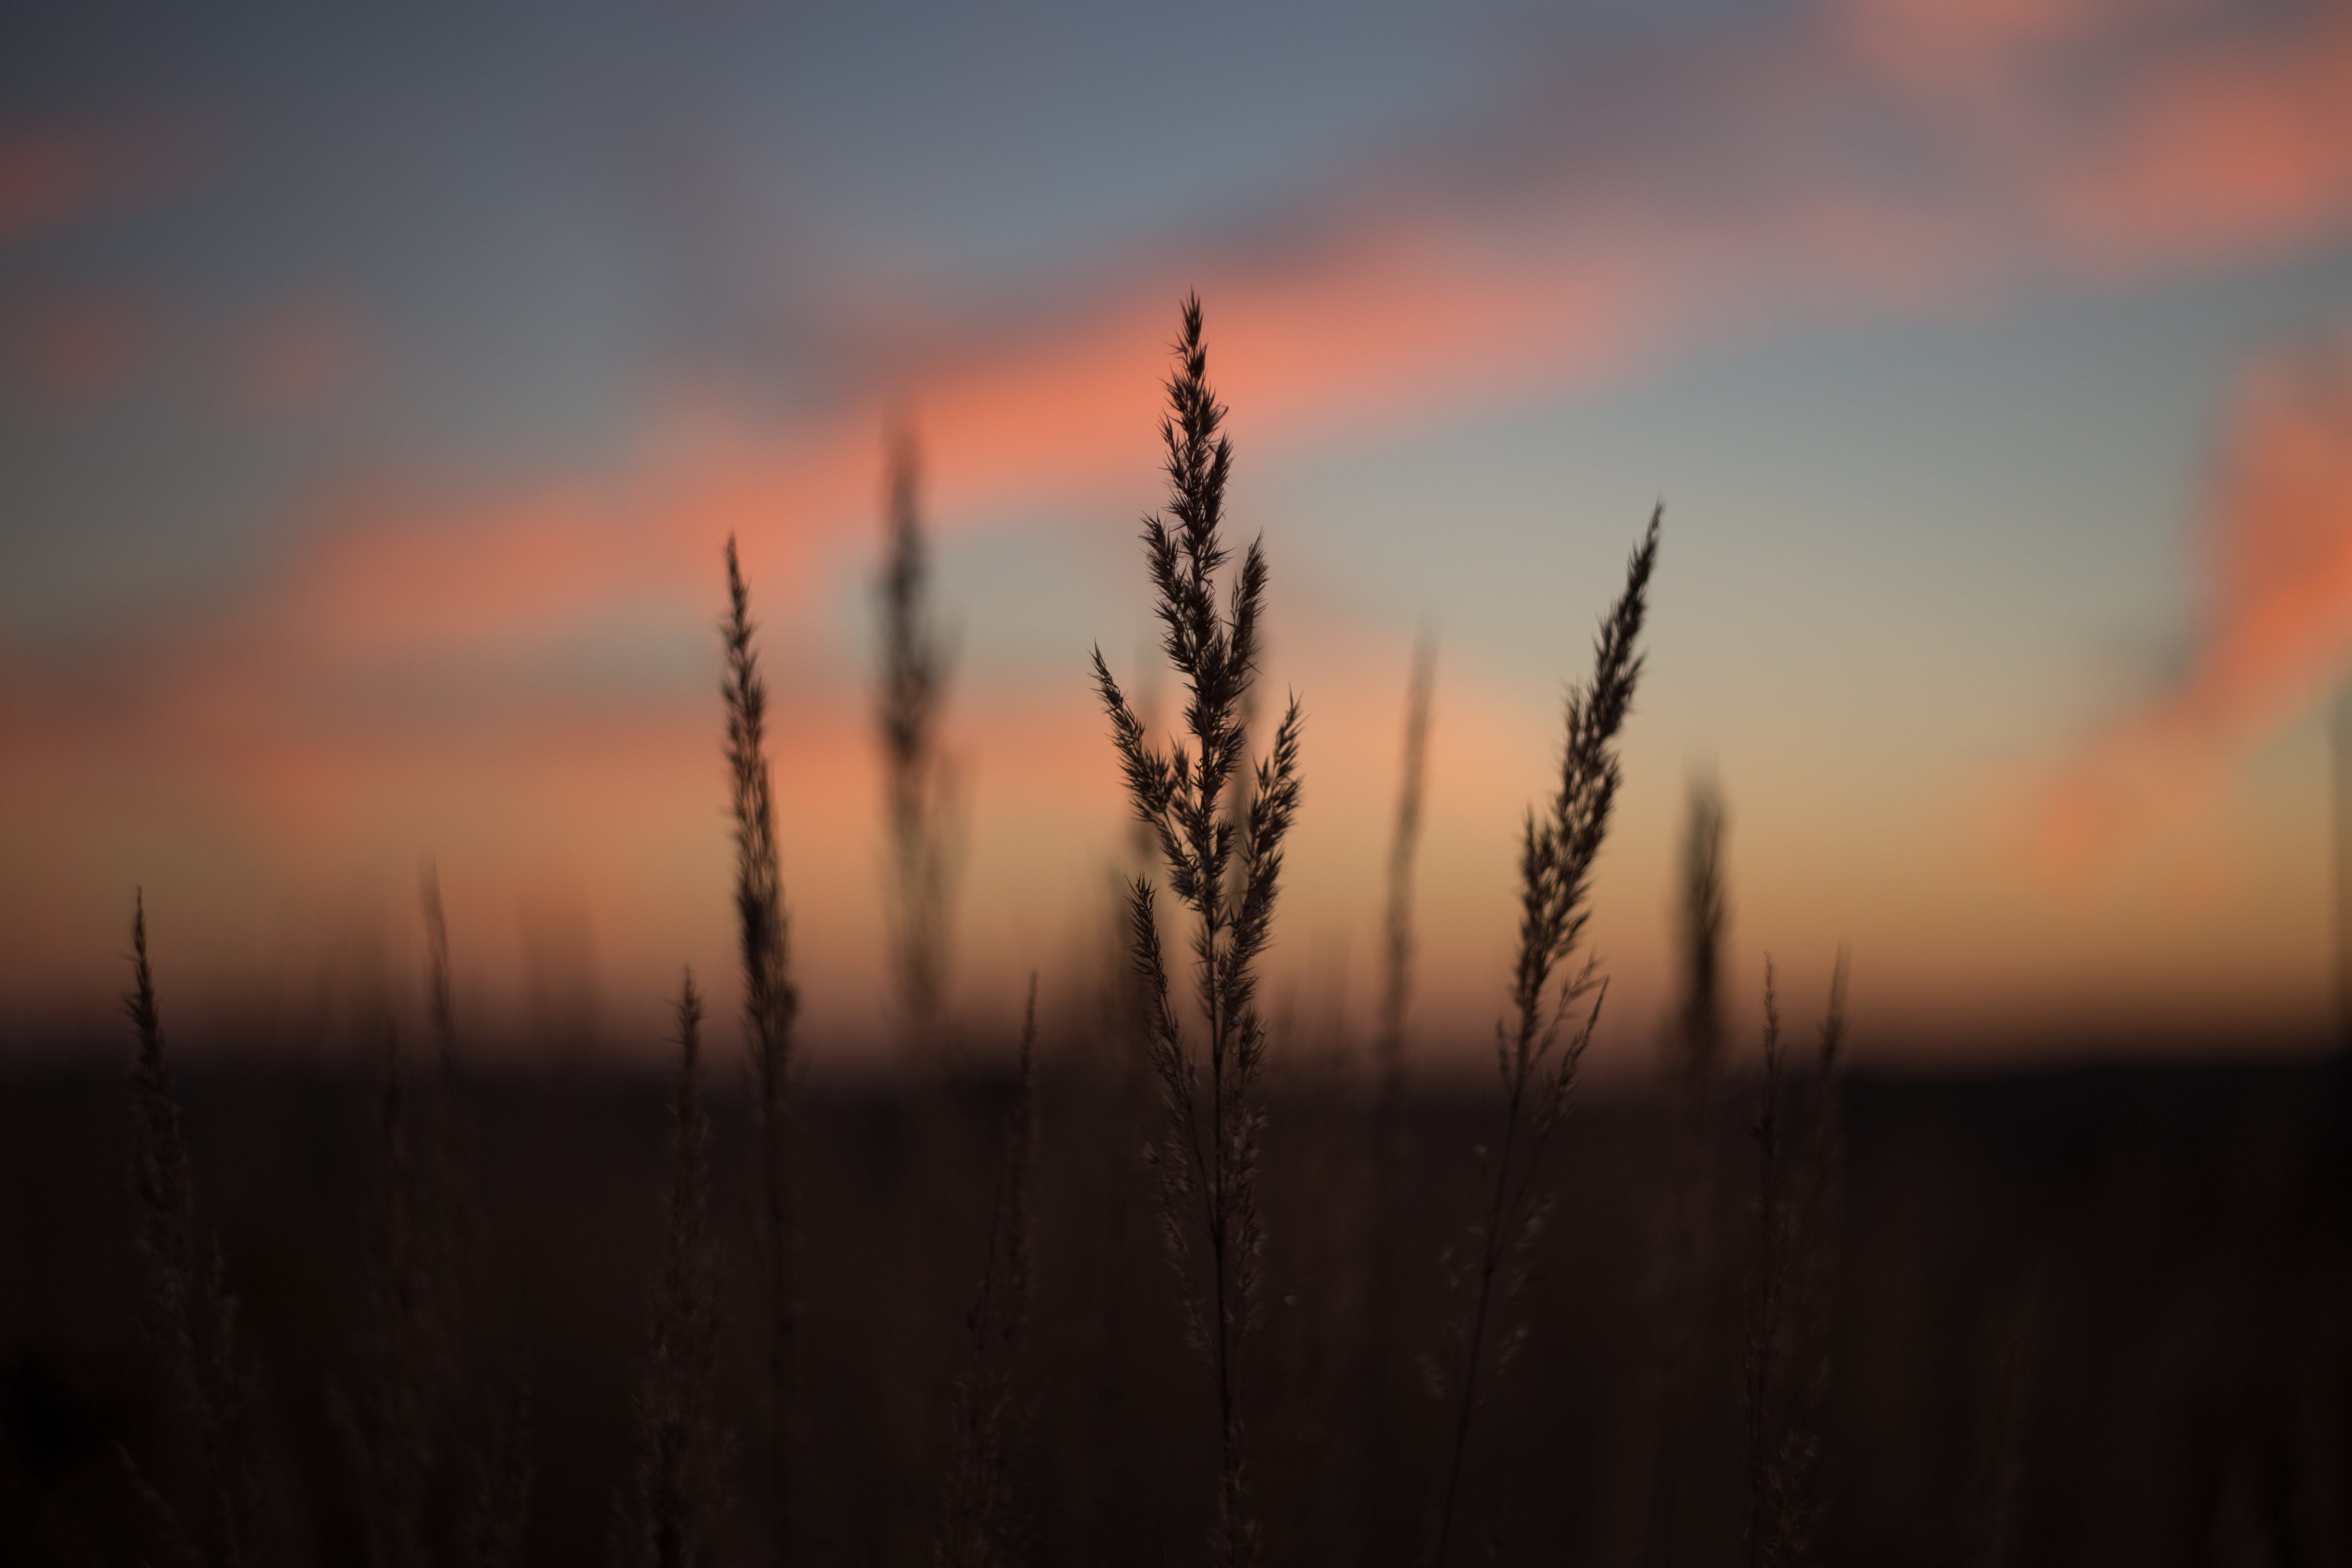 Silhouette of Plant during Golden Time